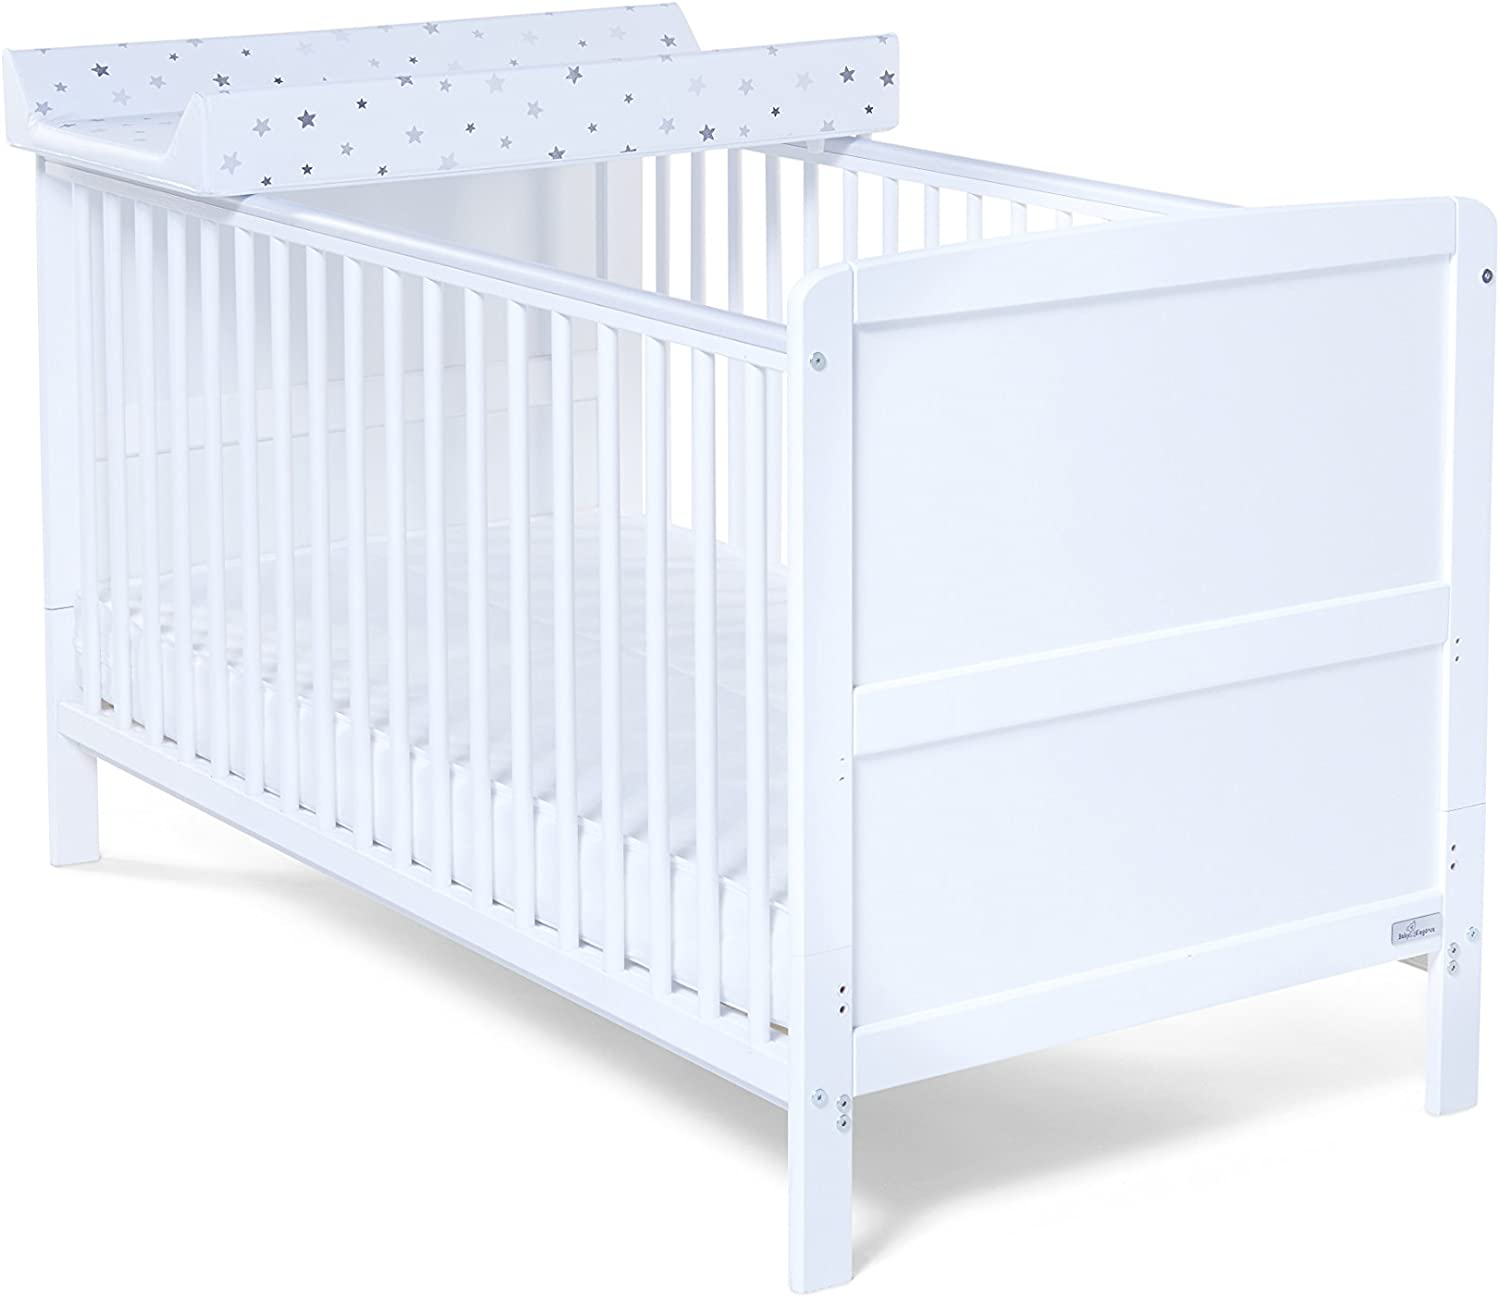 Wooden white Baby Cot Bed 140 x 70 cm ✔ Converts to Junior Bed Real Bargain